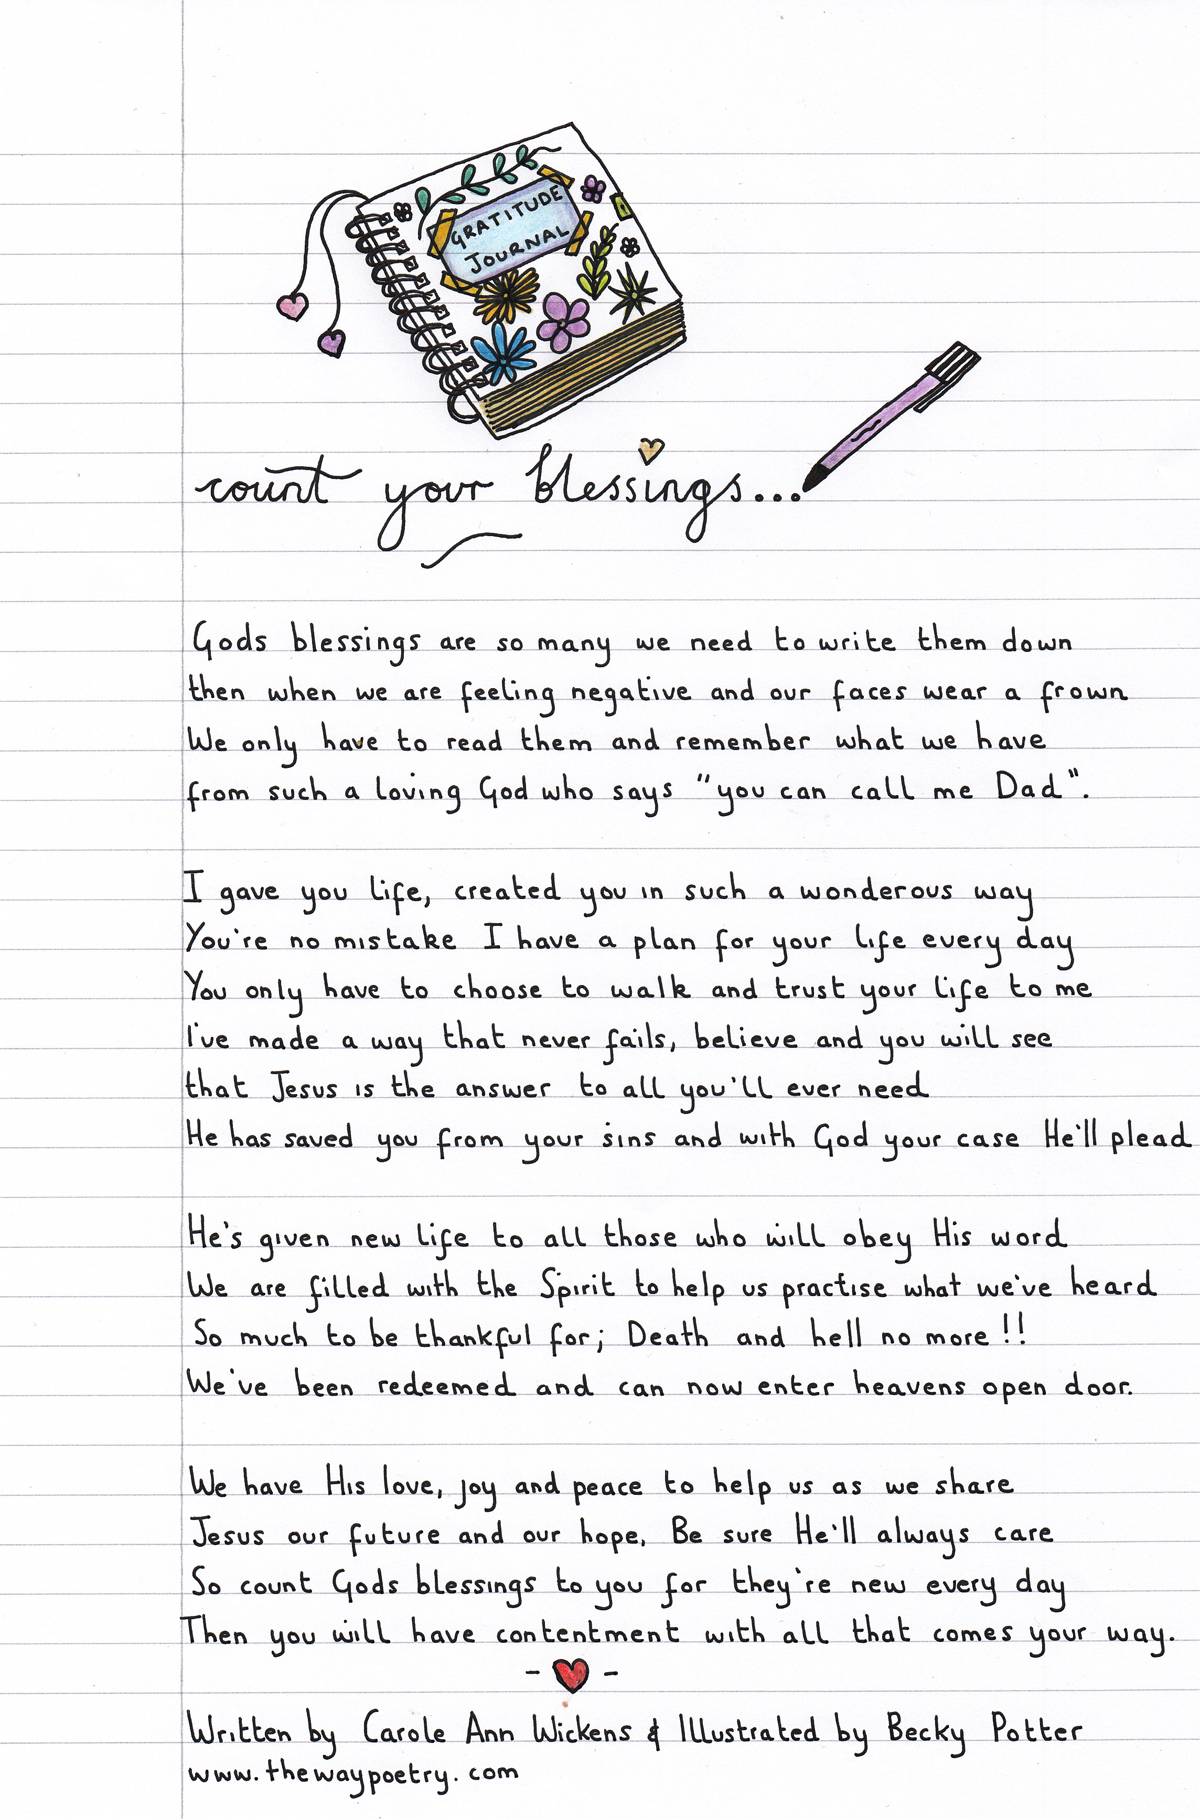 Count Your Blessings by Carole Ann Wickens